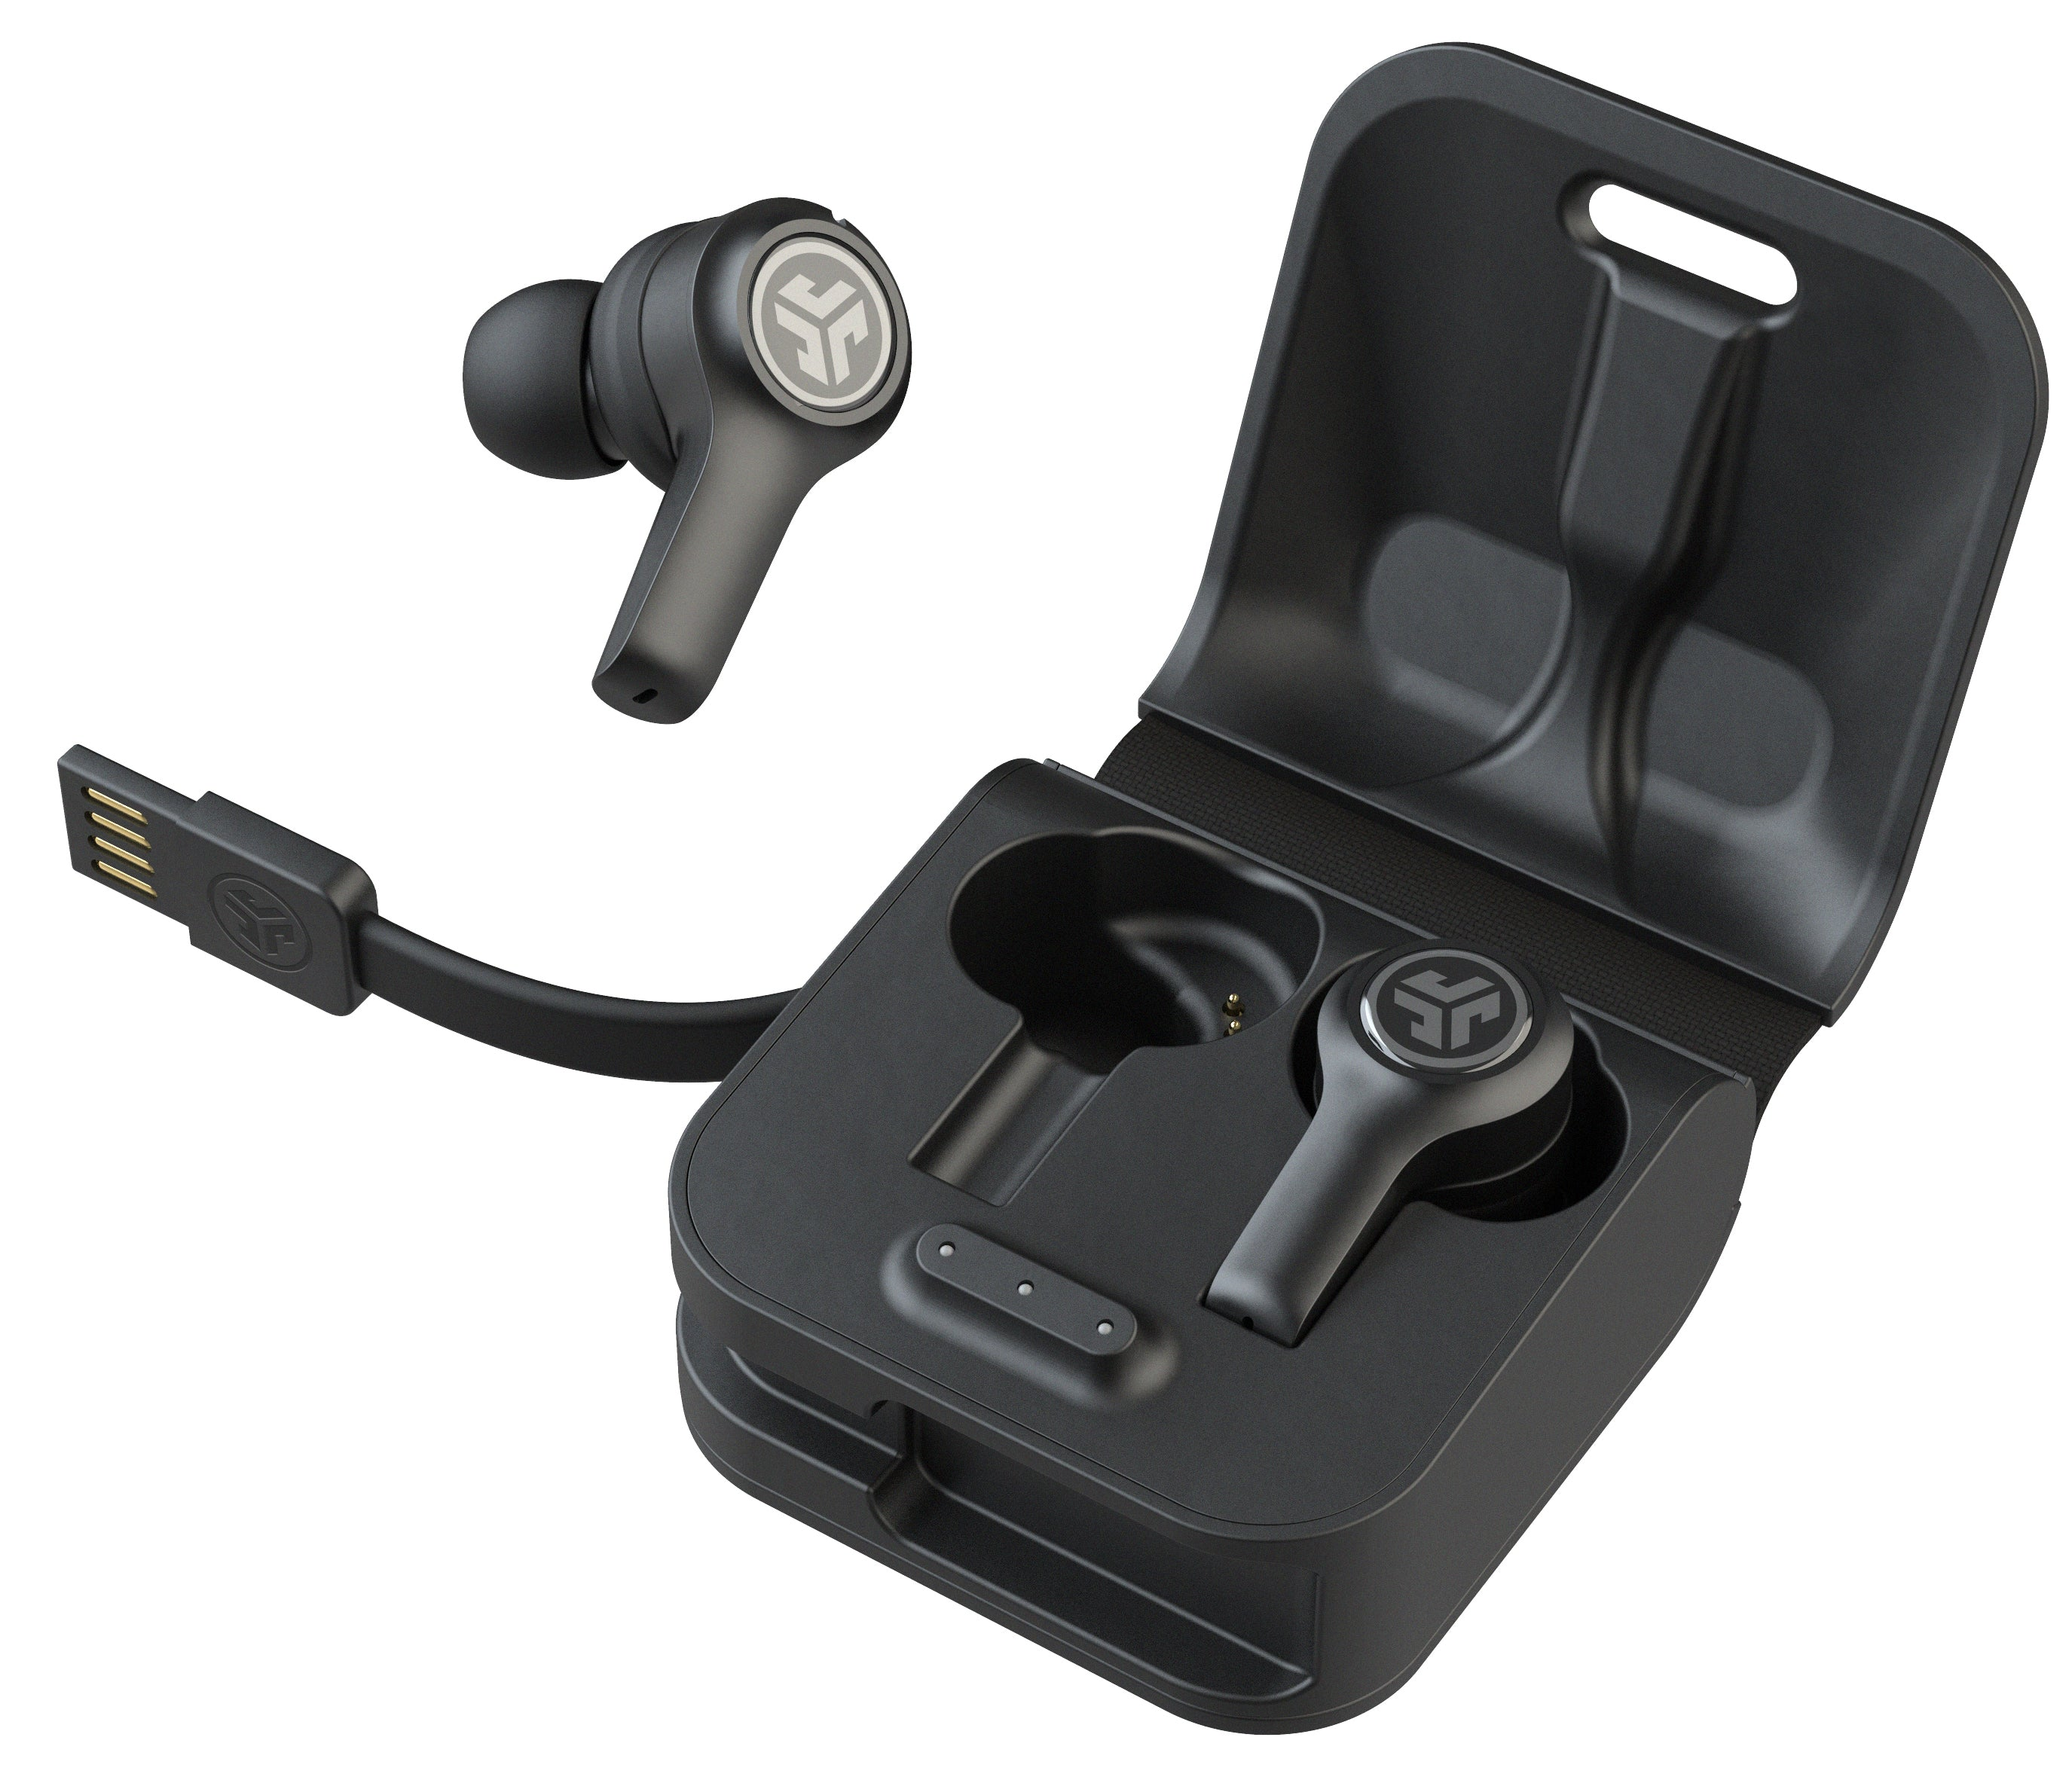 JBuds Air Executive True Wireless Earbuds med opladningsetui